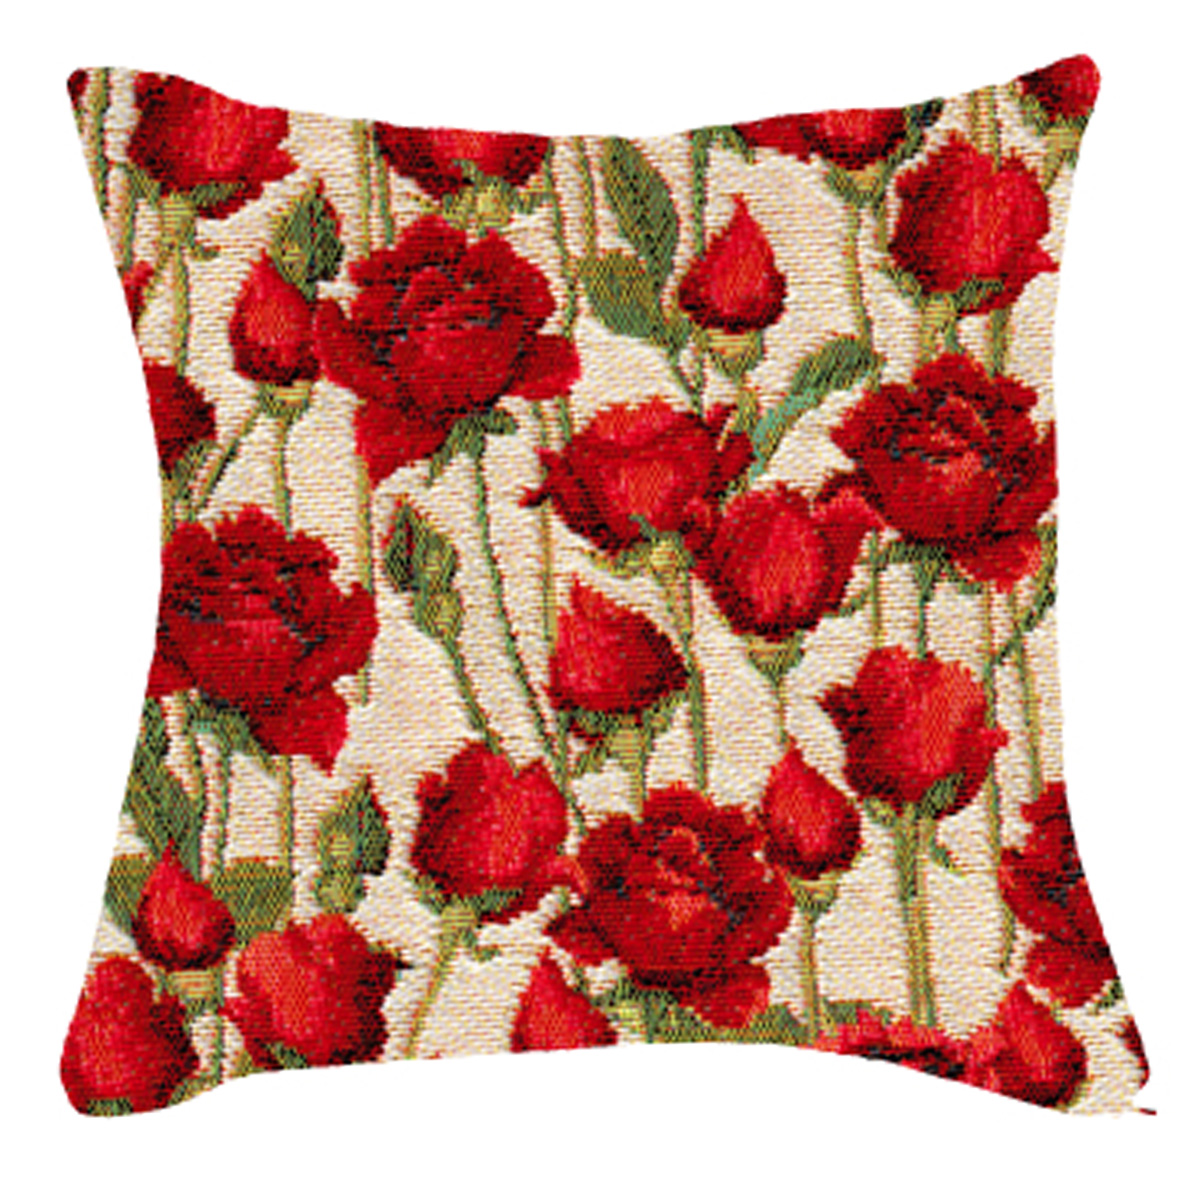 Coussin artisanal \'Royal Tapisserie\' blanc rouge (roses rouges)  - 36x36 cm - [Q6354]